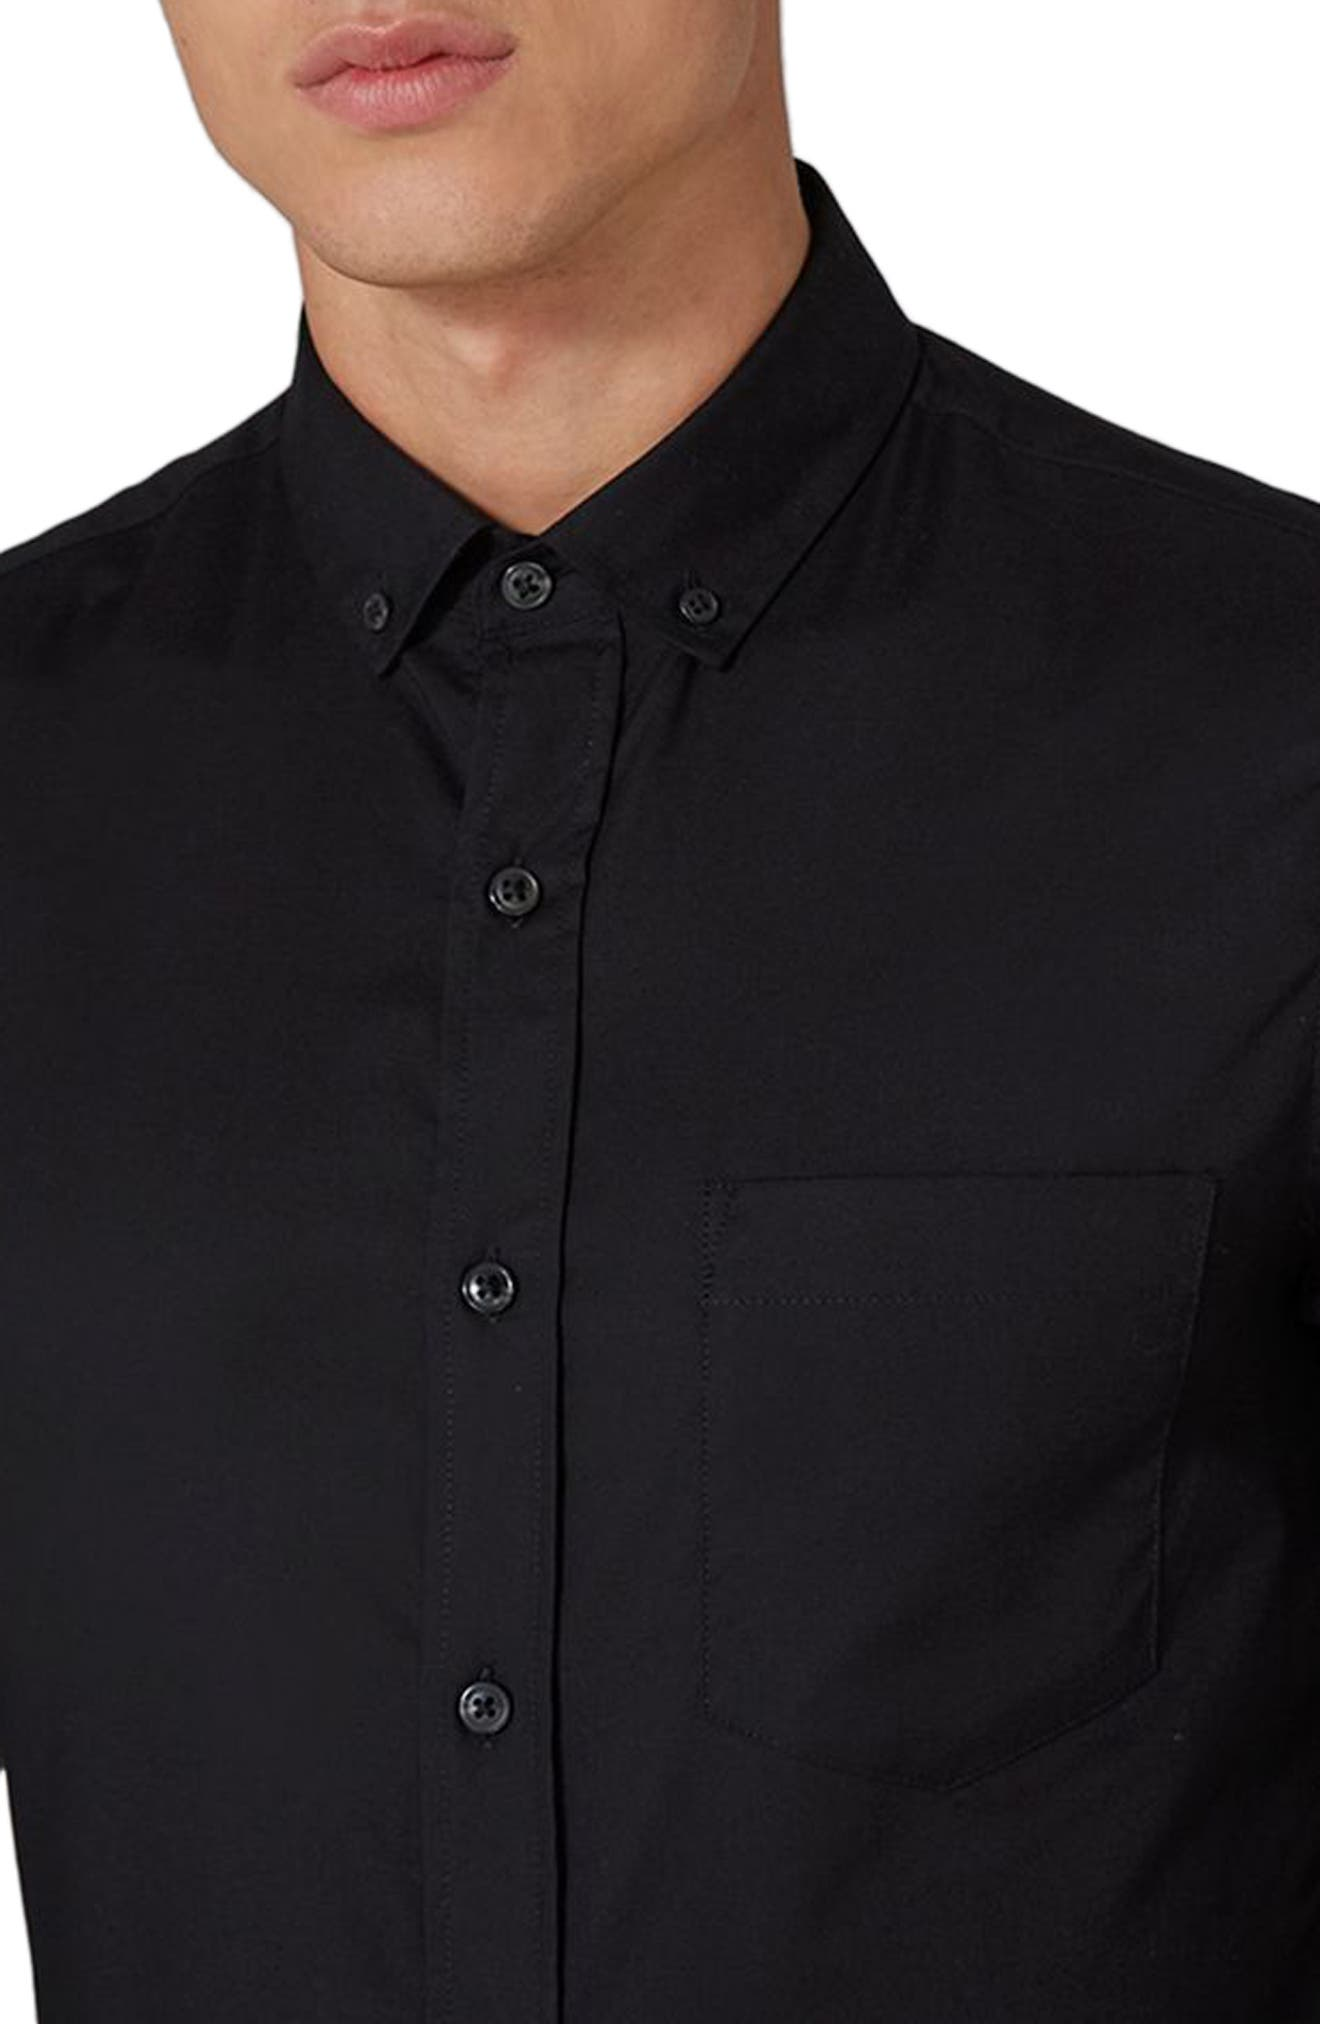 Muscle Fit Oxford Shirt,                             Alternate thumbnail 3, color,                             001